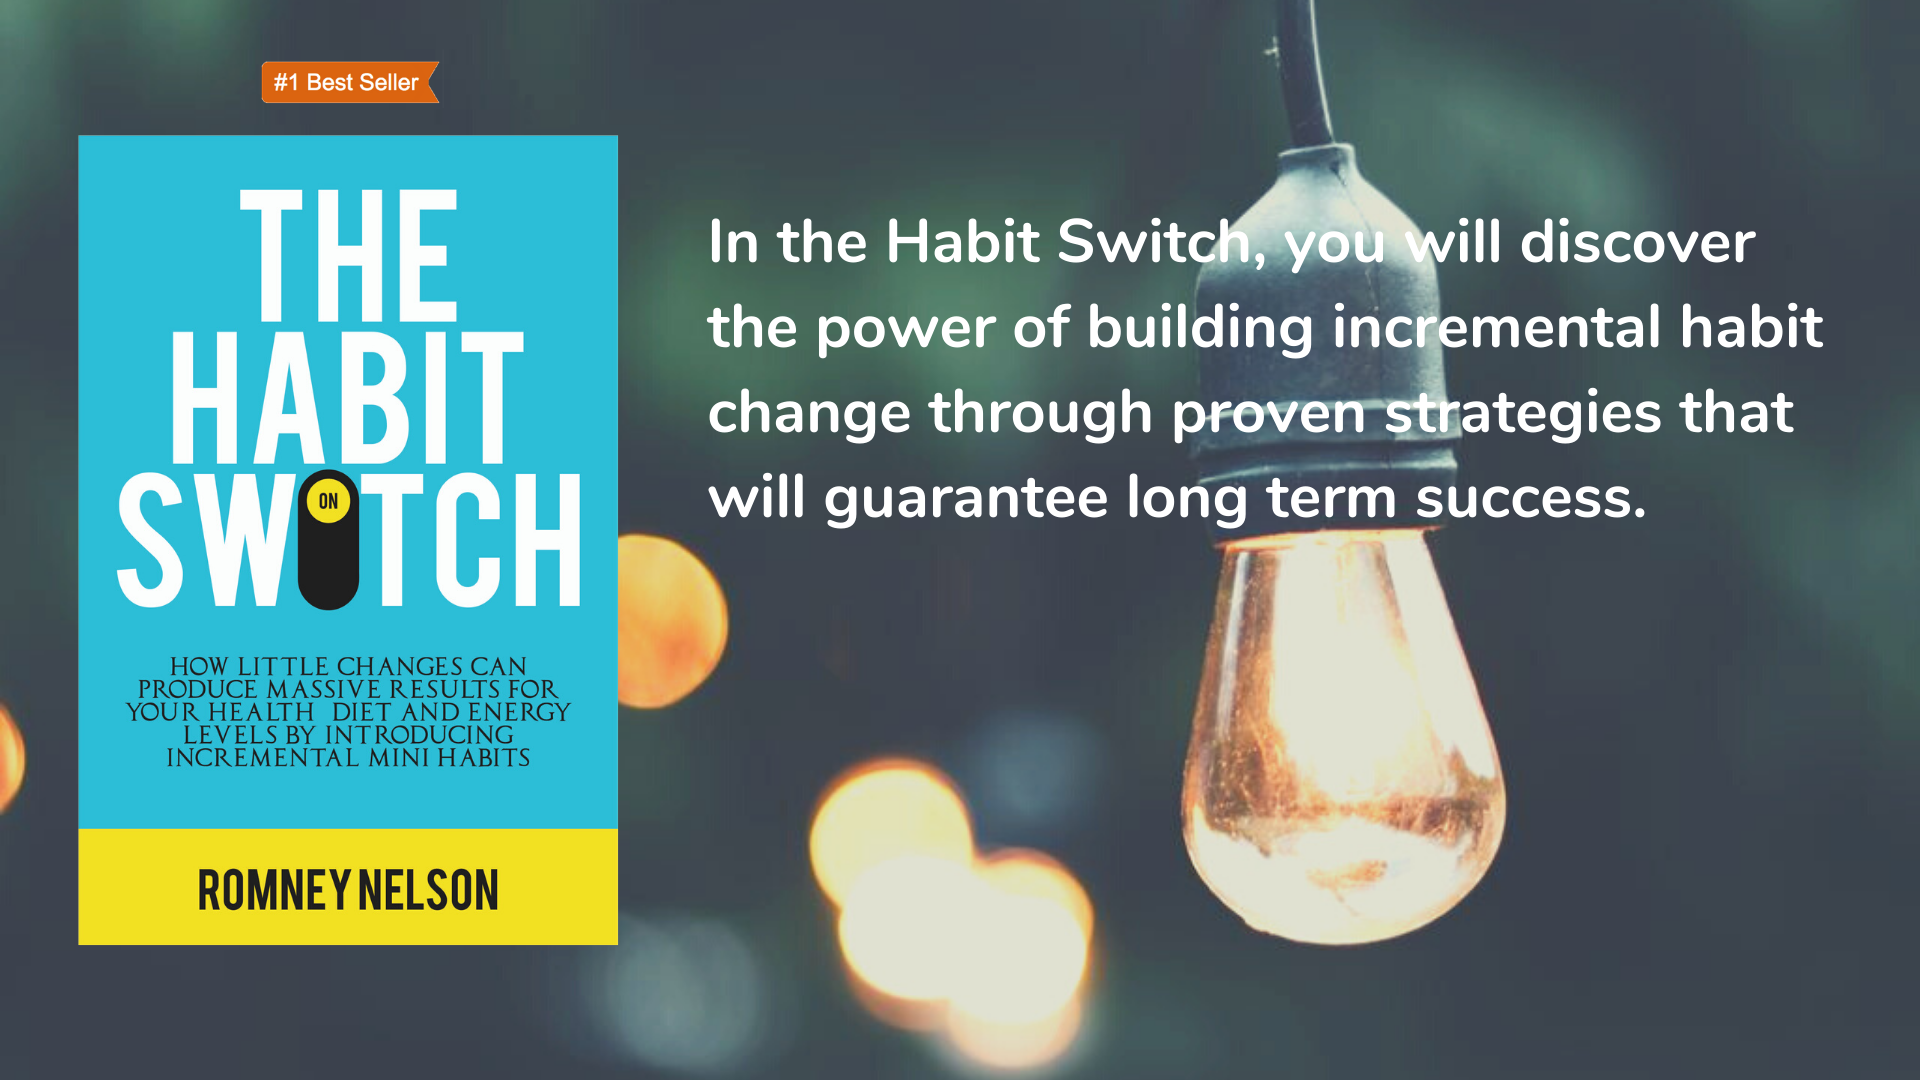 The Habit Switch by Romney Nelson